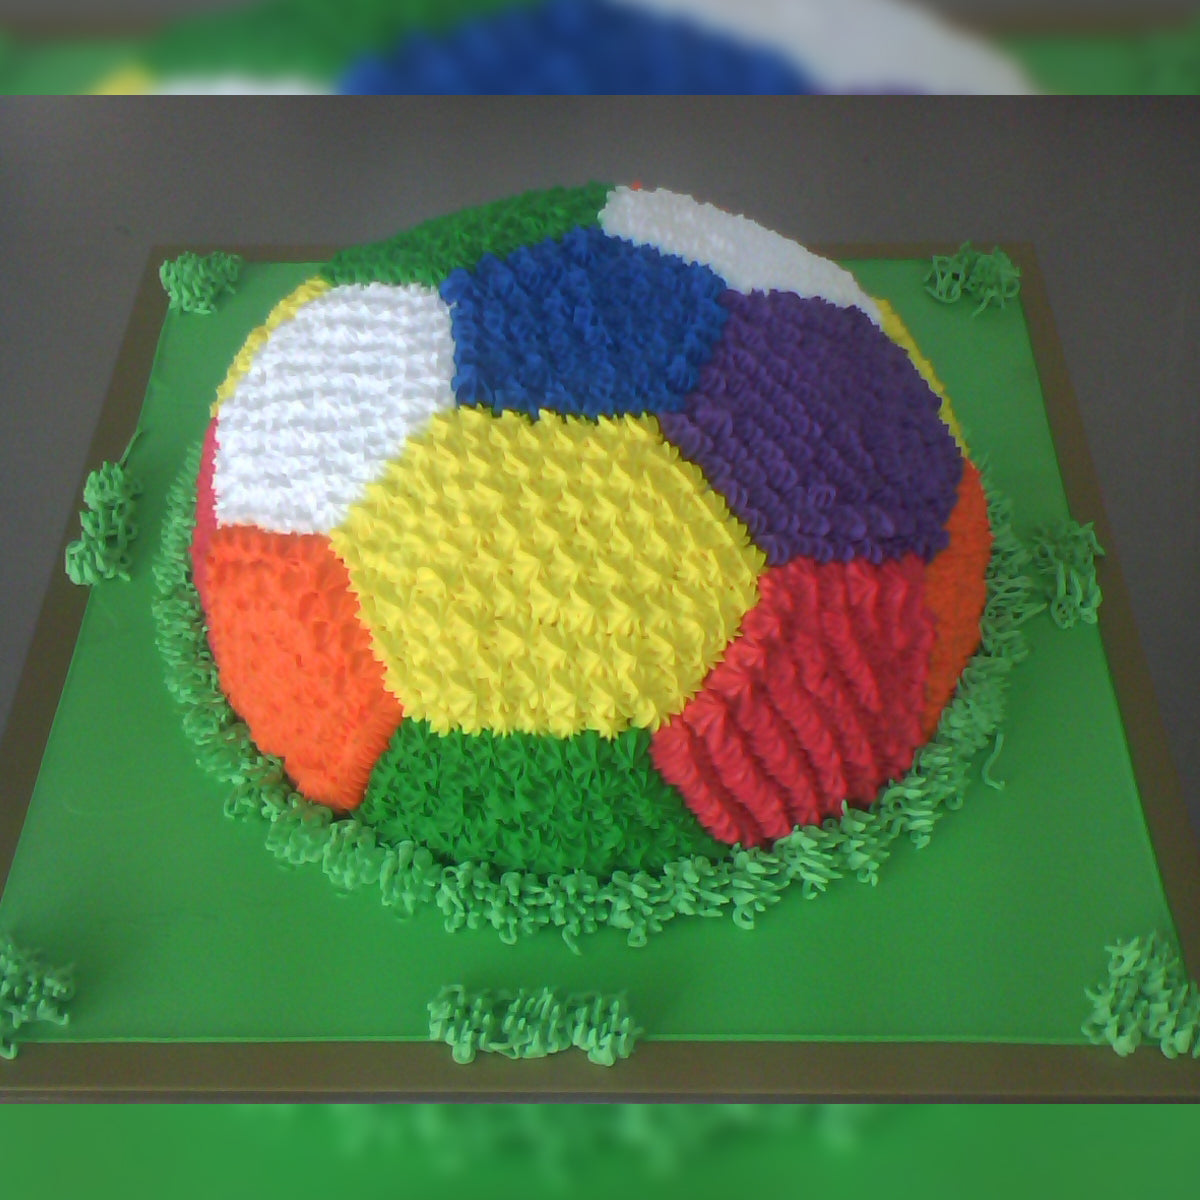 Colorful Football Cake - CWD